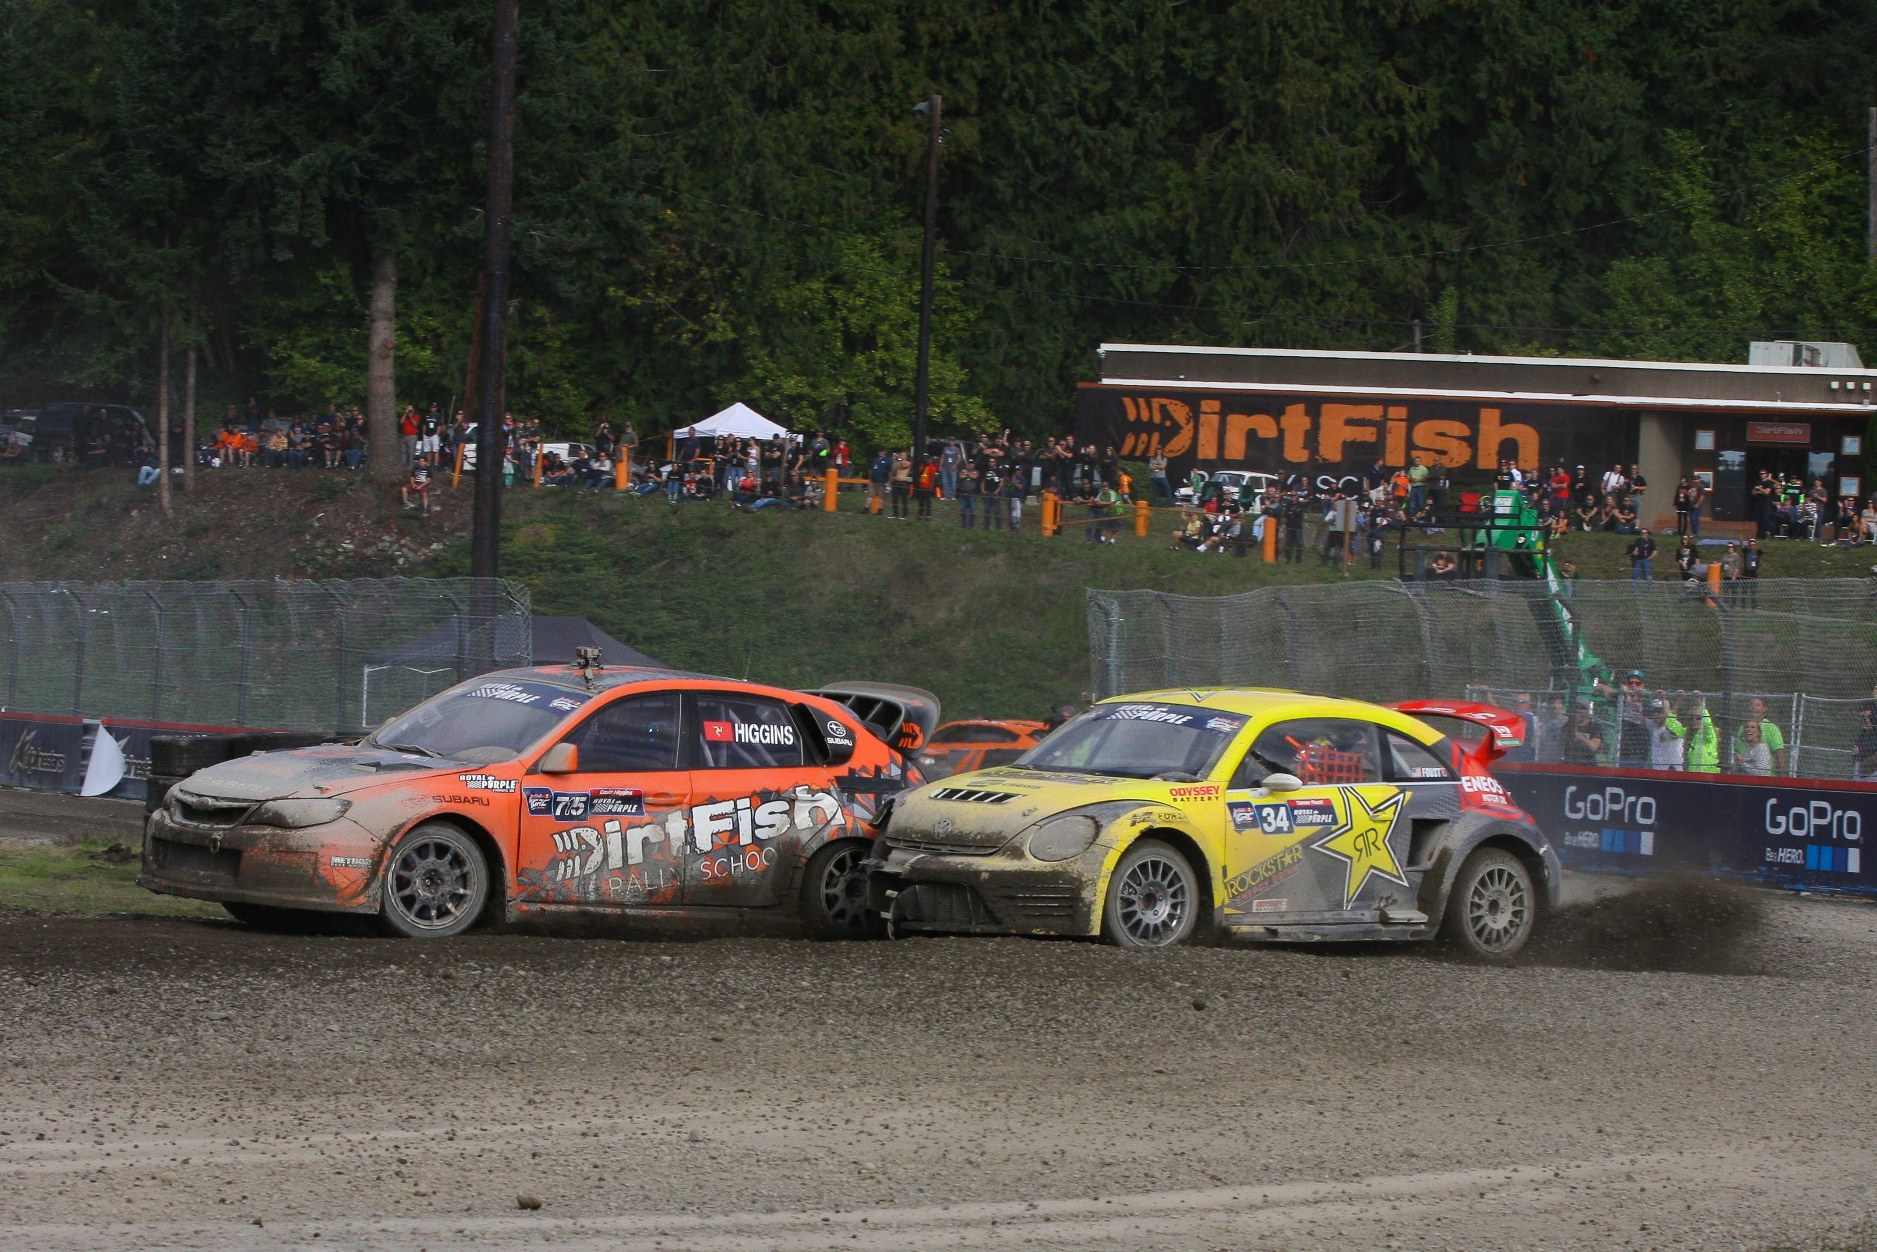 DirtFish_Higgins_Battle